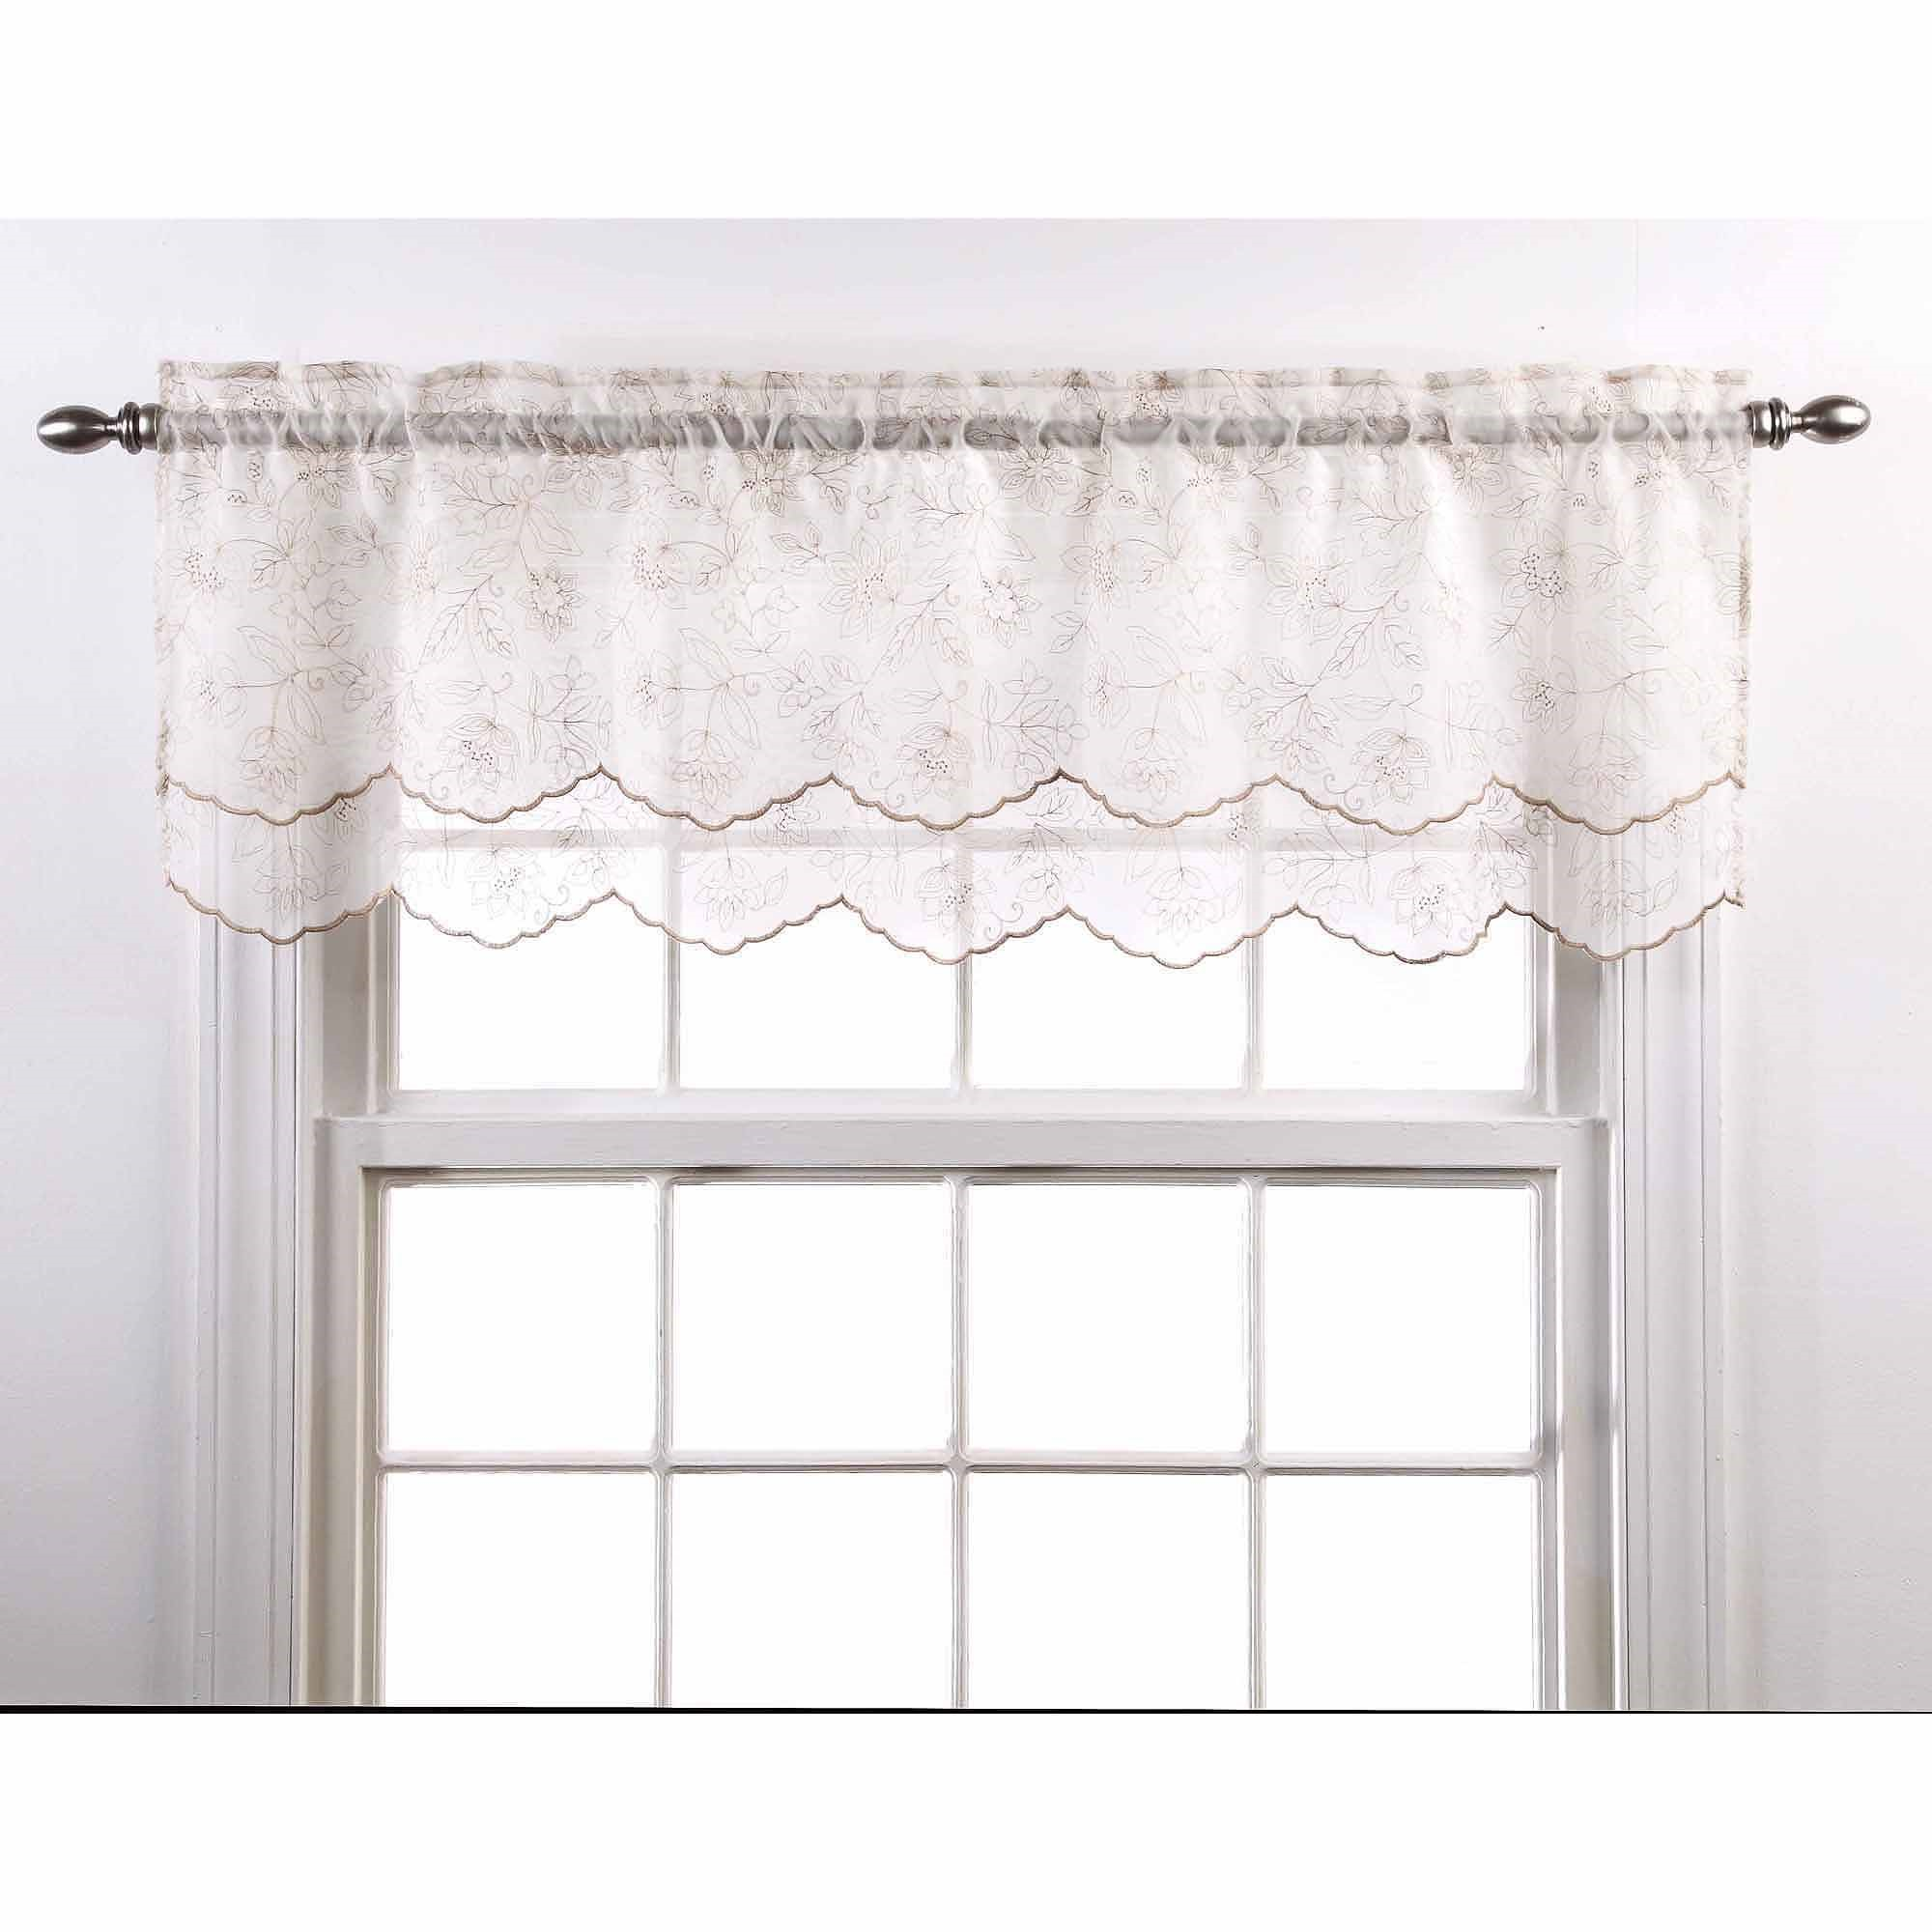 "Reese Embroidered Sheer Layered Valance, 55"" x 17"""